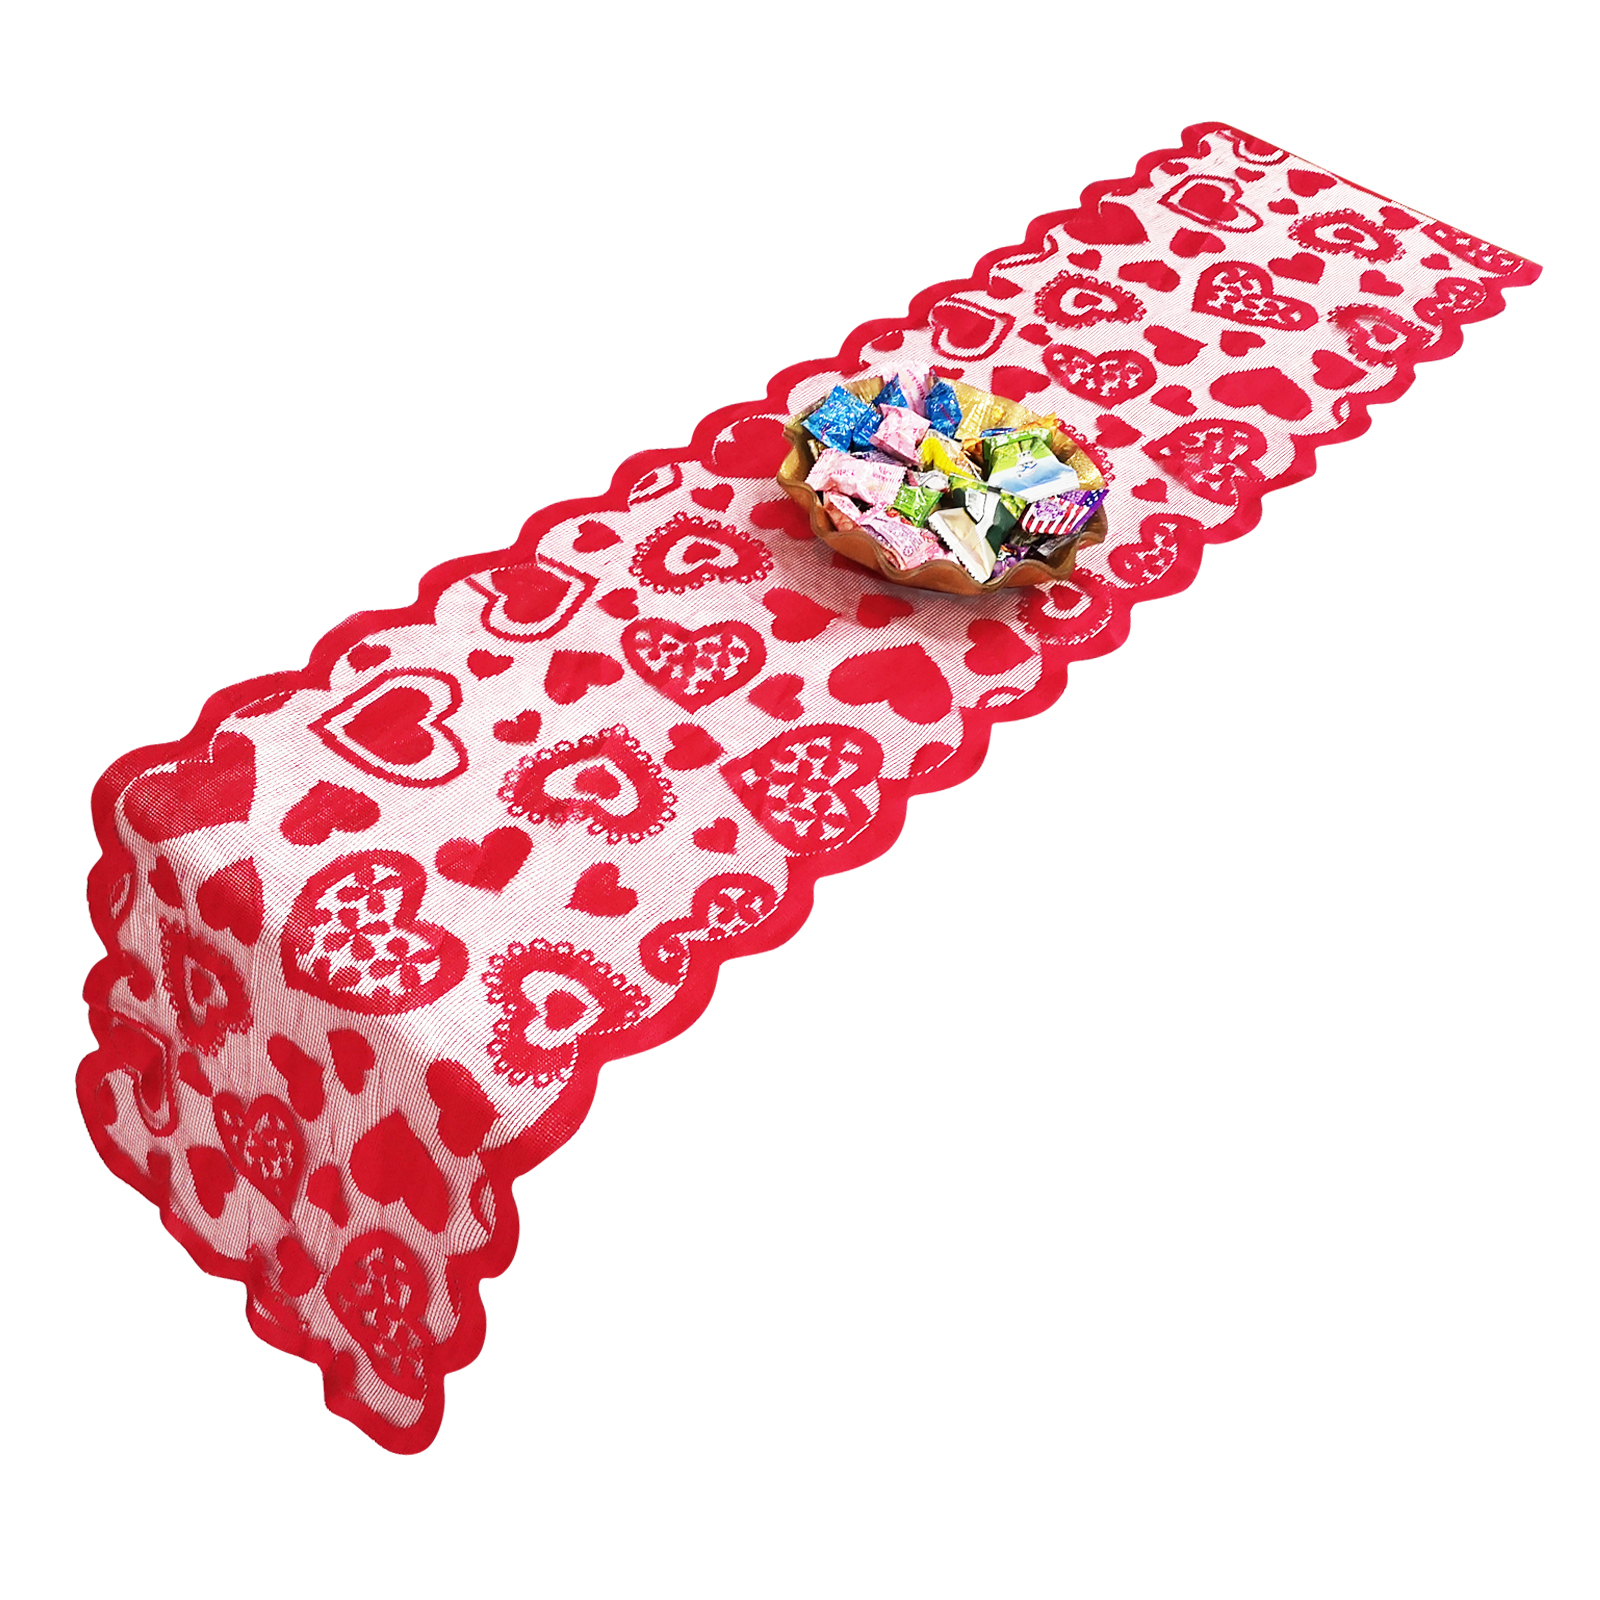 New 33x183cm Heart Pattern Lace Table Runners Valentine's Day Red Love Table Flag Heart Shaped Tablecloth Home & Living Decor